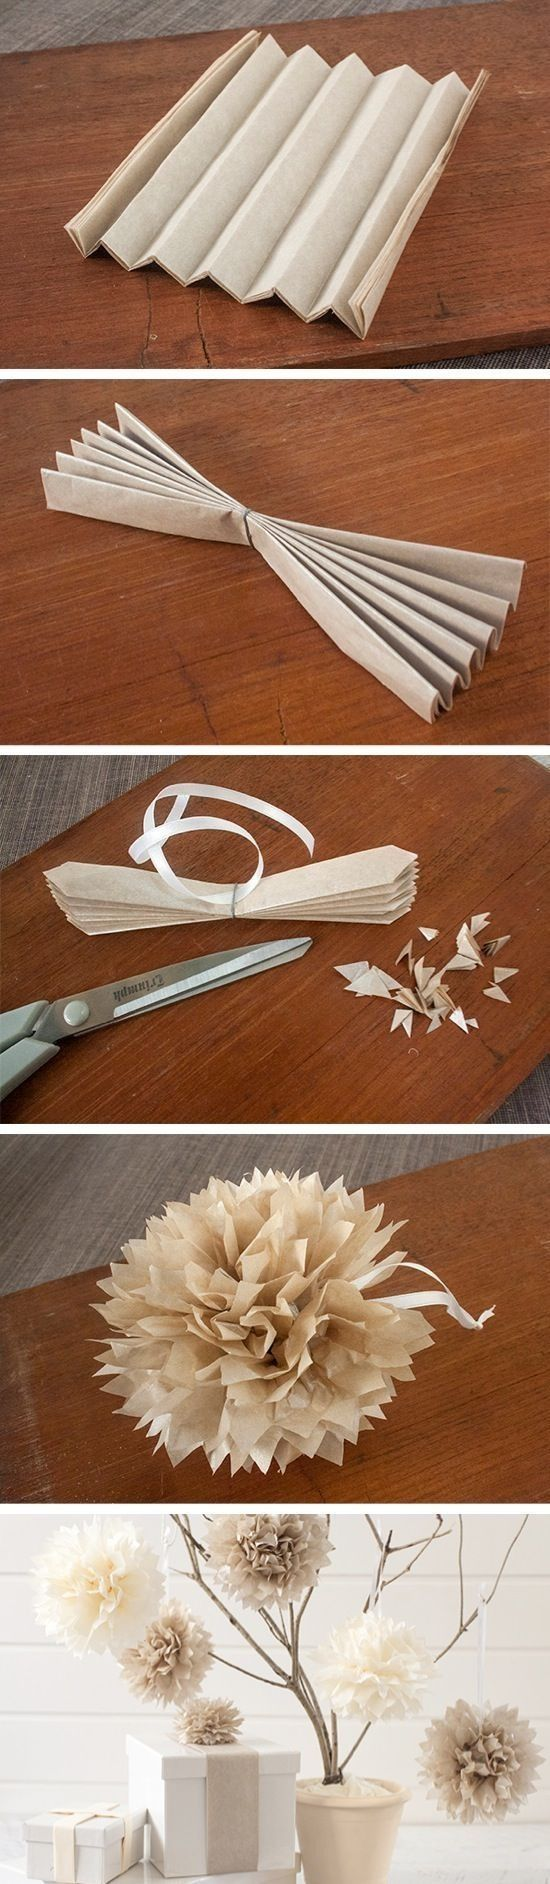 Easy DIY flower decorations